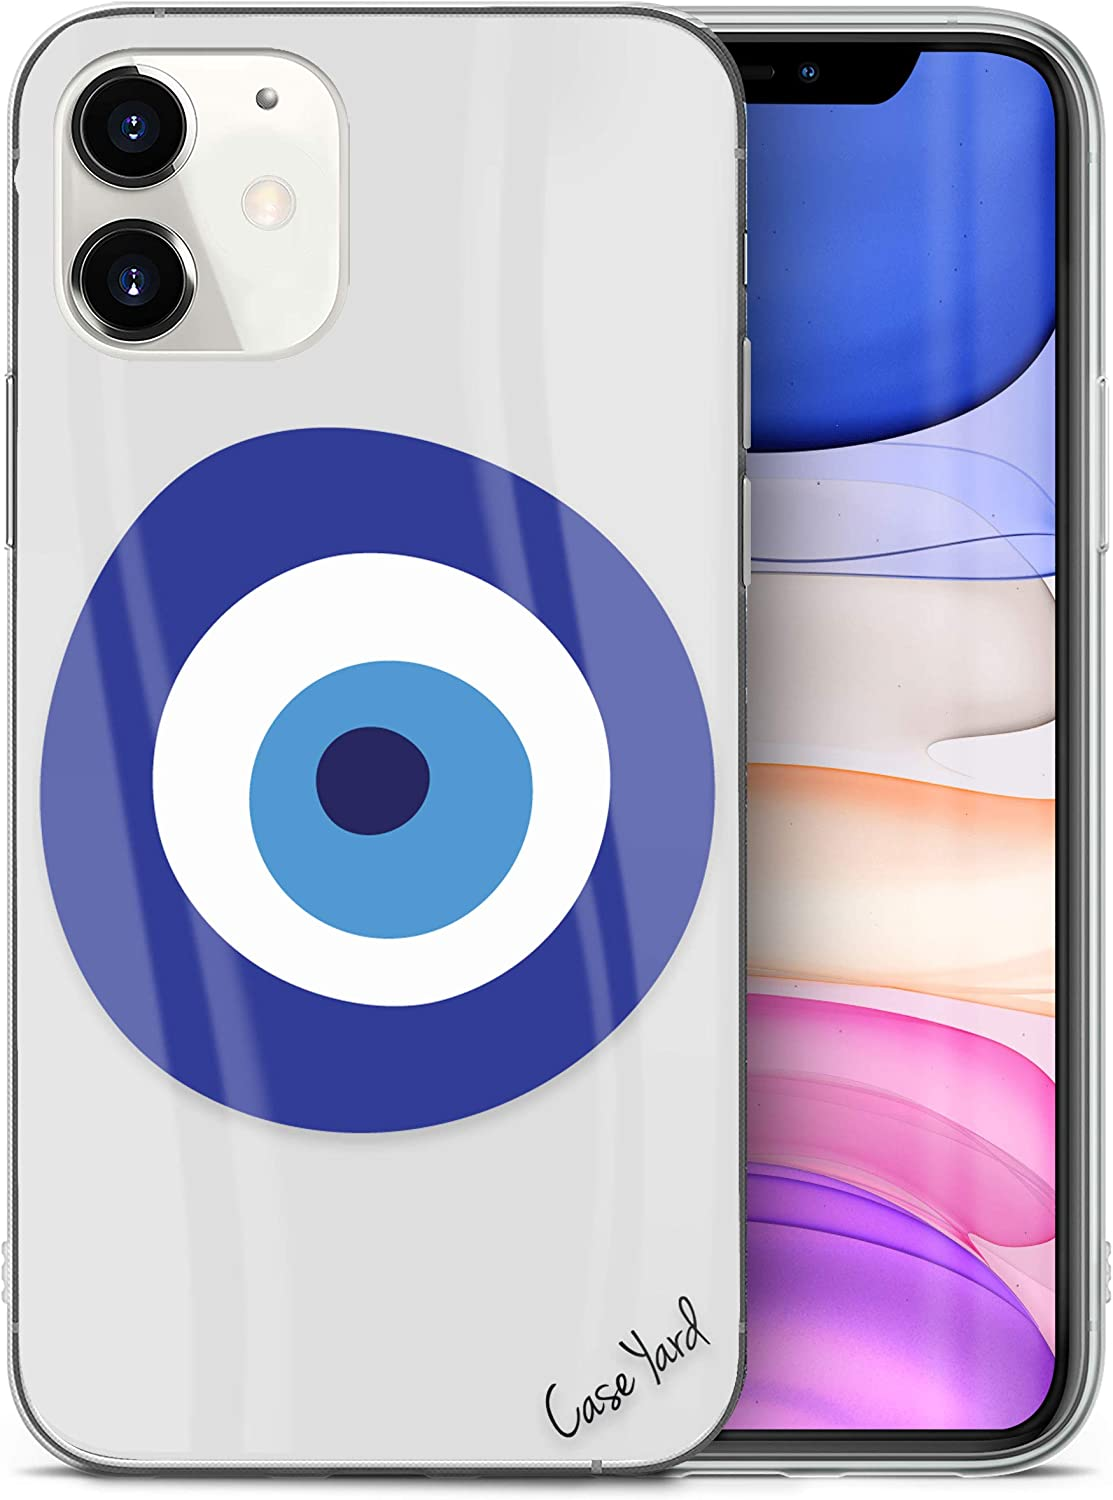 CaseYard Clear Soft & Flexible TPU Case for iPhone 11 - Ultra Low Profile Slim Fit Thin Shockproof Transparent Bumper Protective Cover Drop Protective Case (Evil Eye)